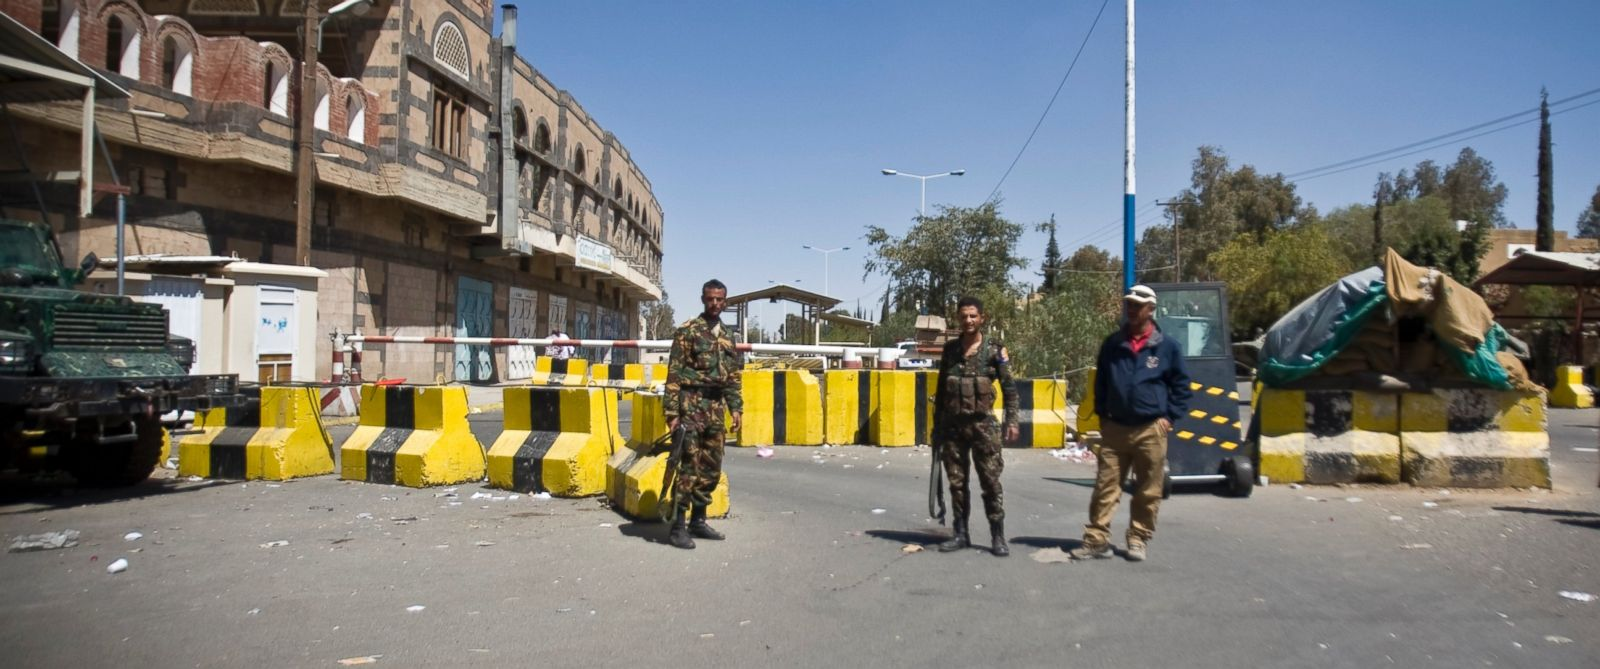 PHOTO: Police troopers stand guard at the entrance of the U.S. Embassy in Sanaa, Yemen, Feb. 11, 2015.